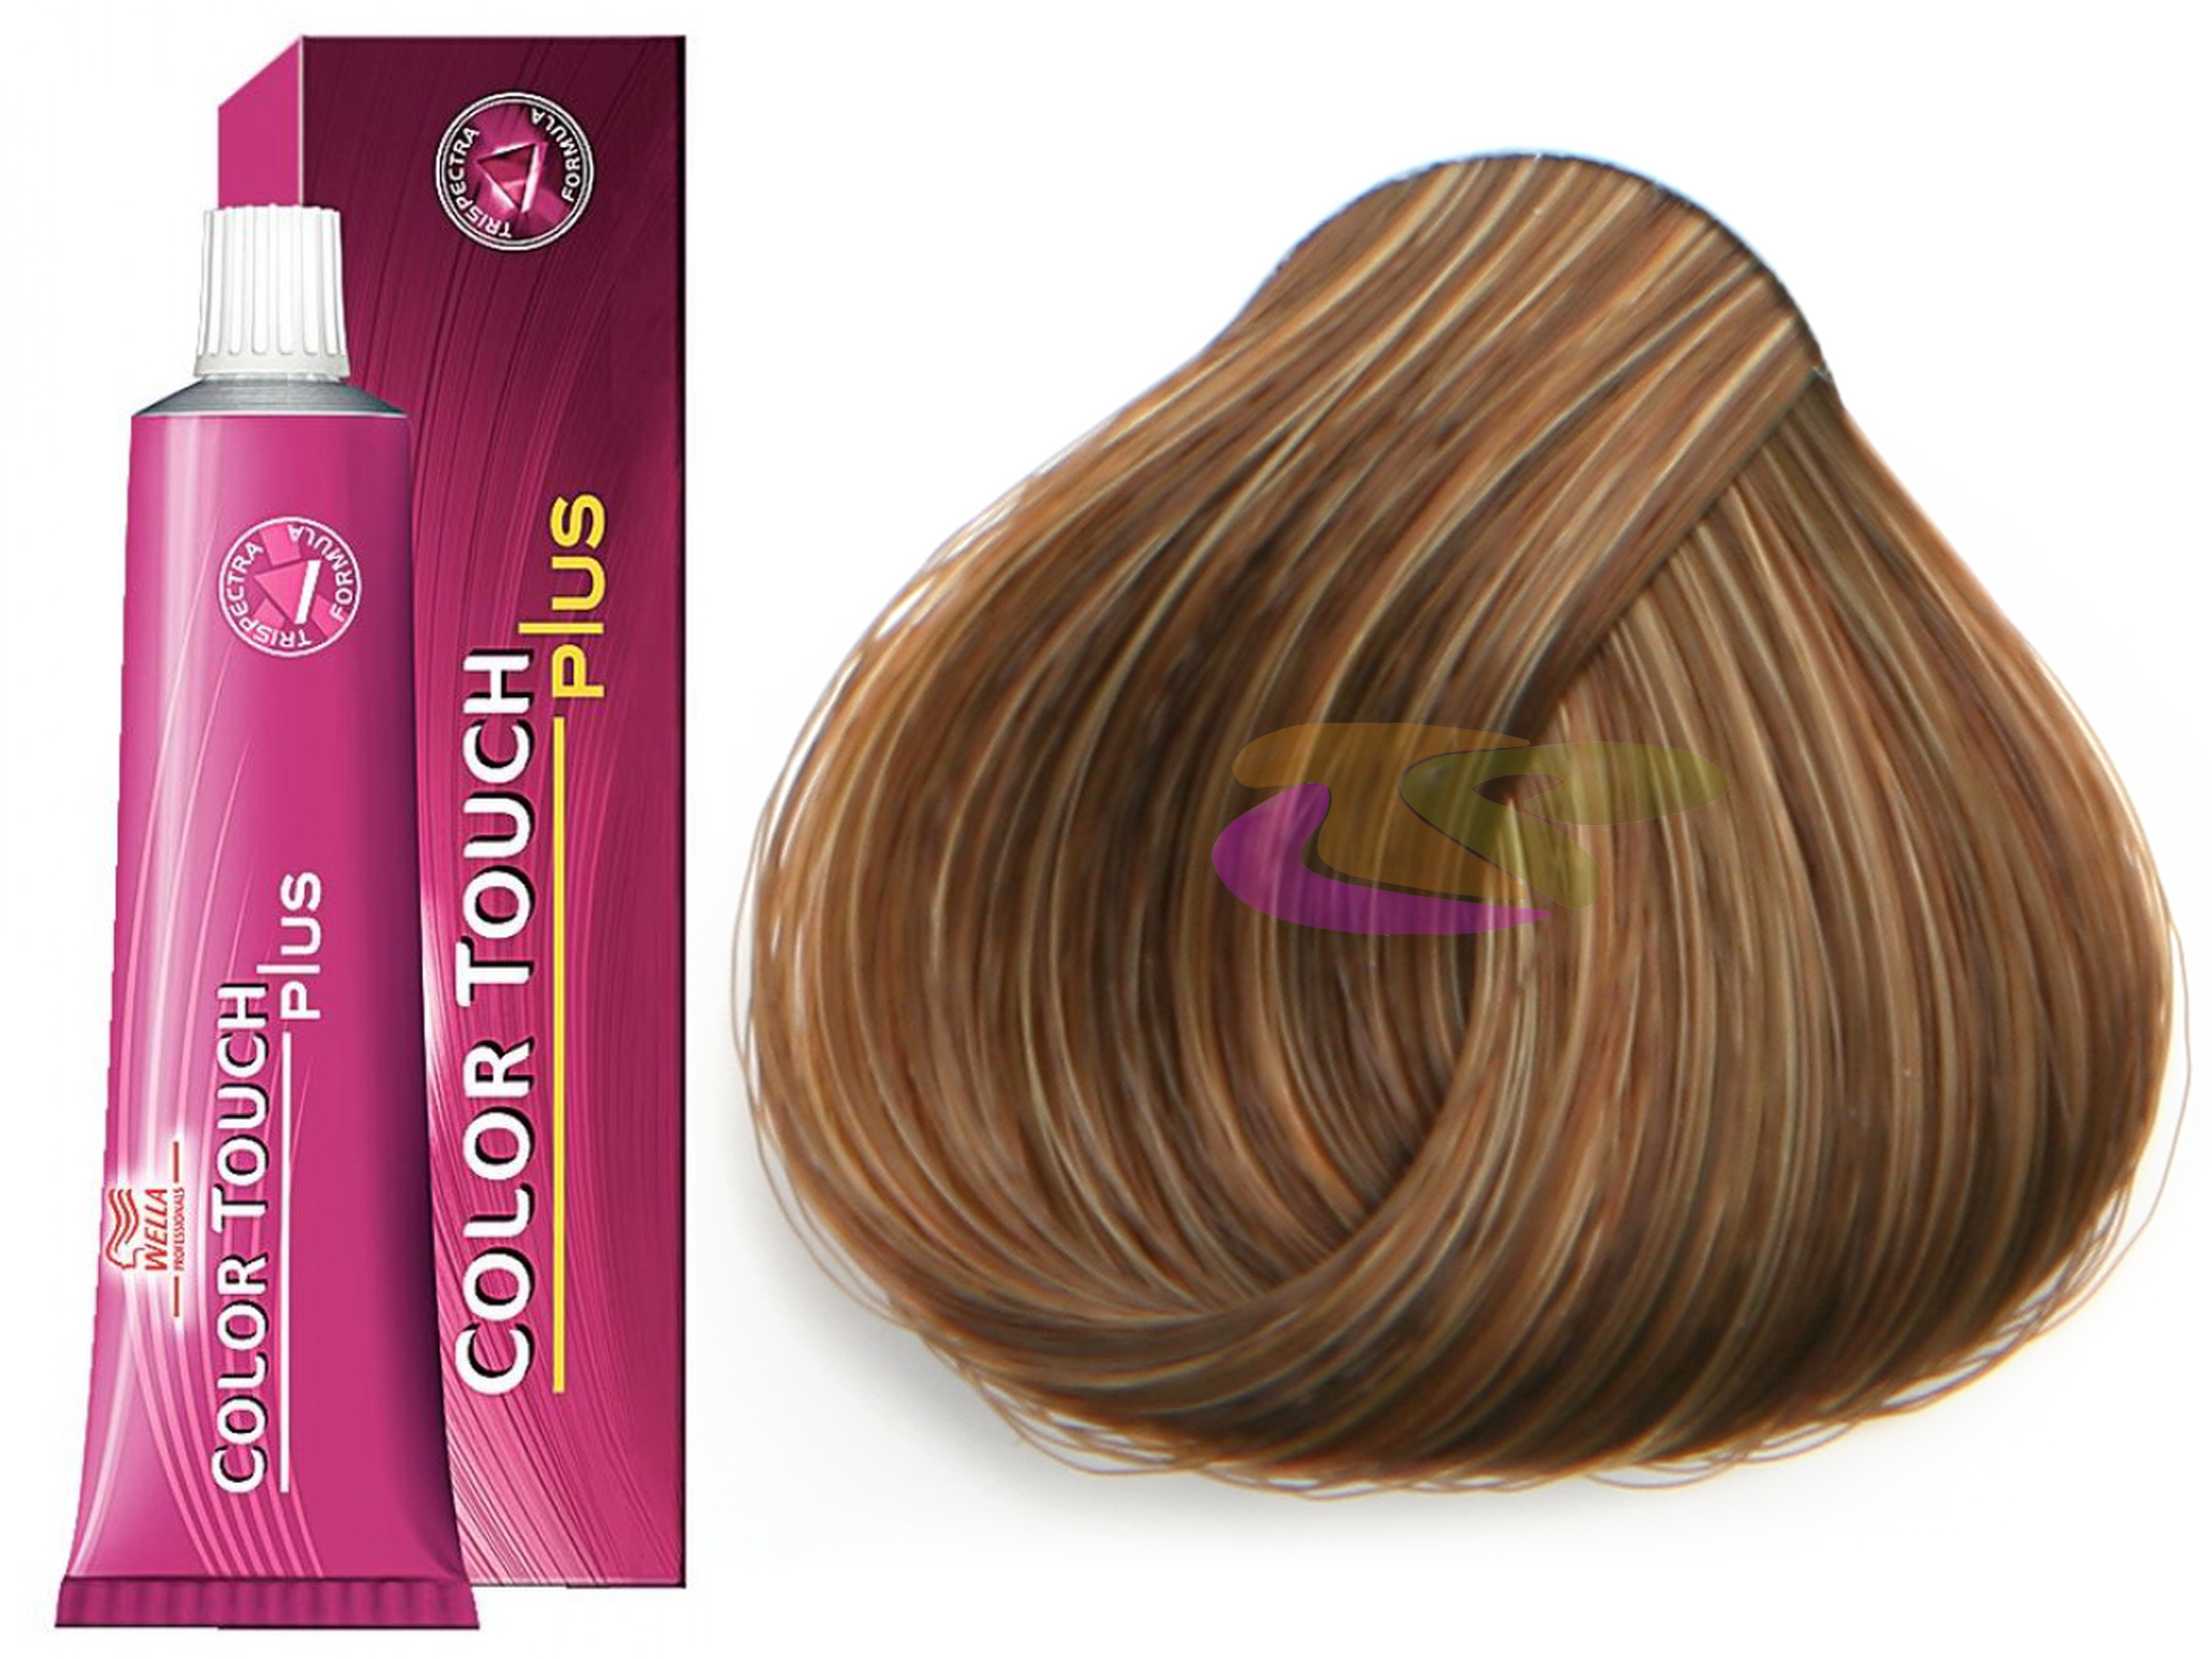 Ba o color touch plus 77 03 sin amoniaco de 60 ml wella 5 76 - Bano de color wella ...